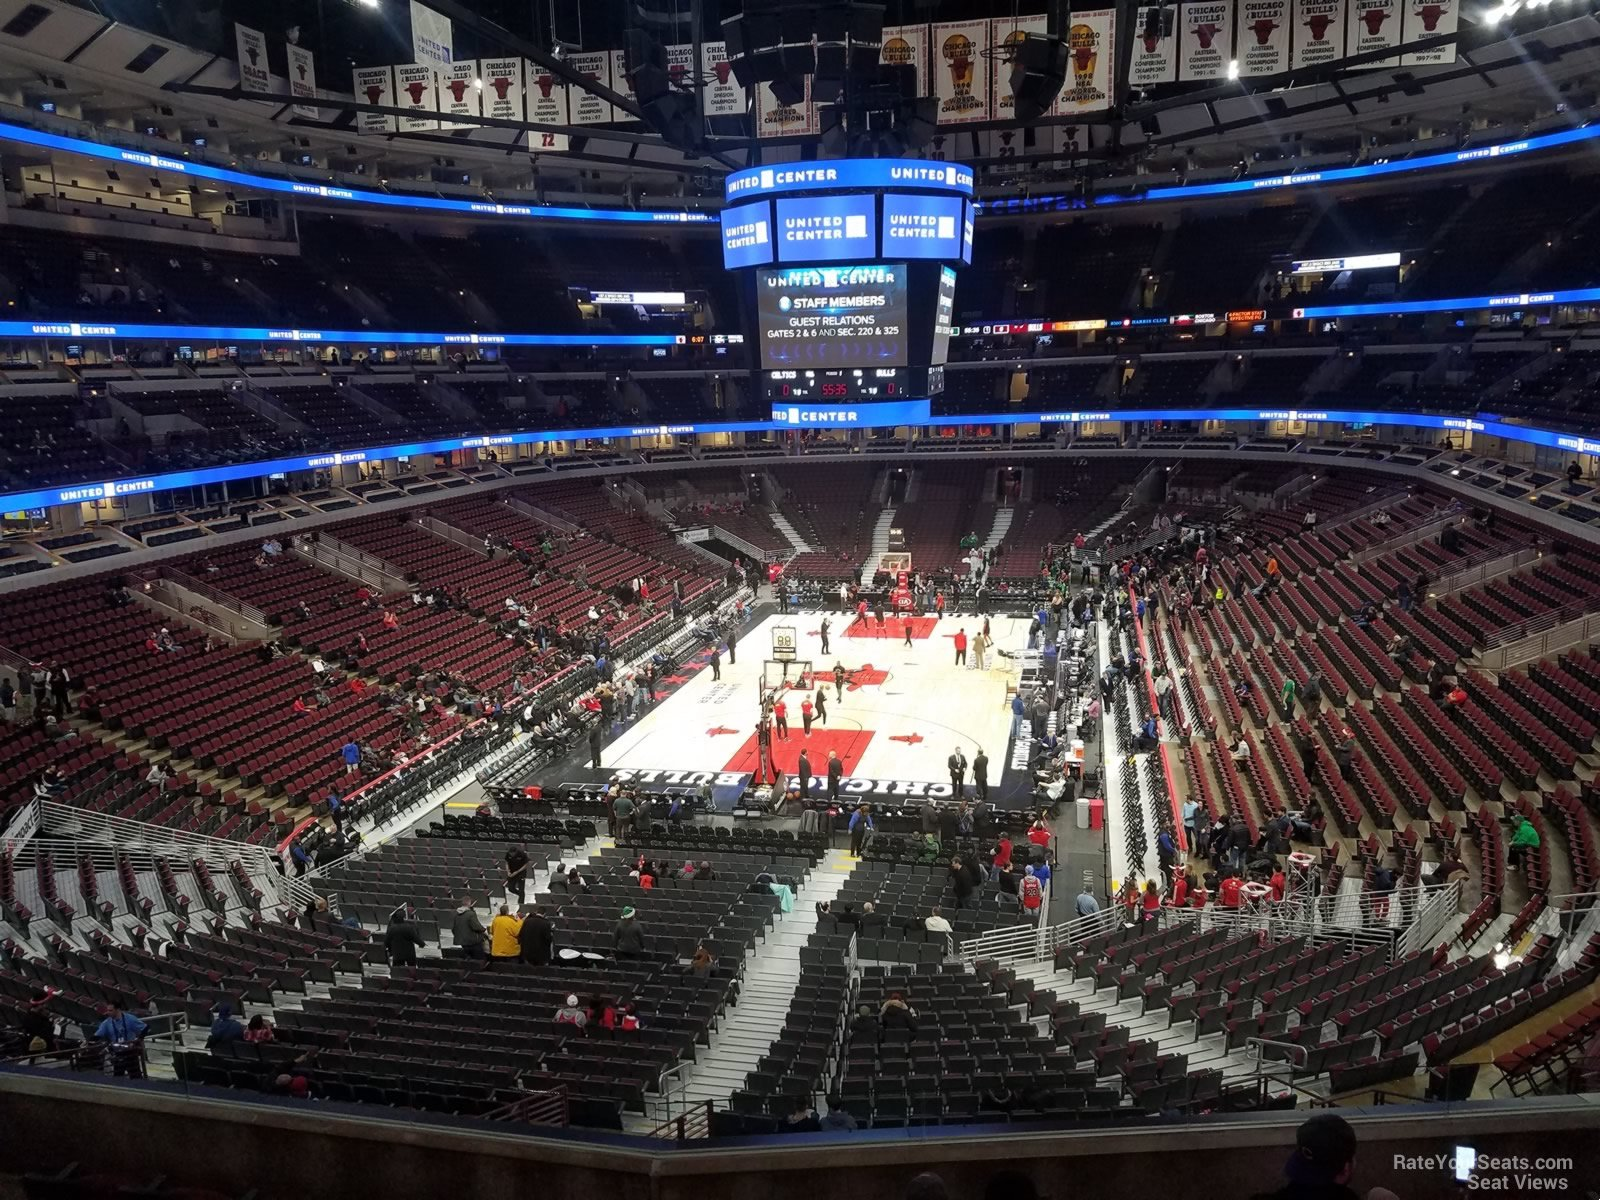 United Center Section 208 - Chicago Bulls - RateYourSeats.com